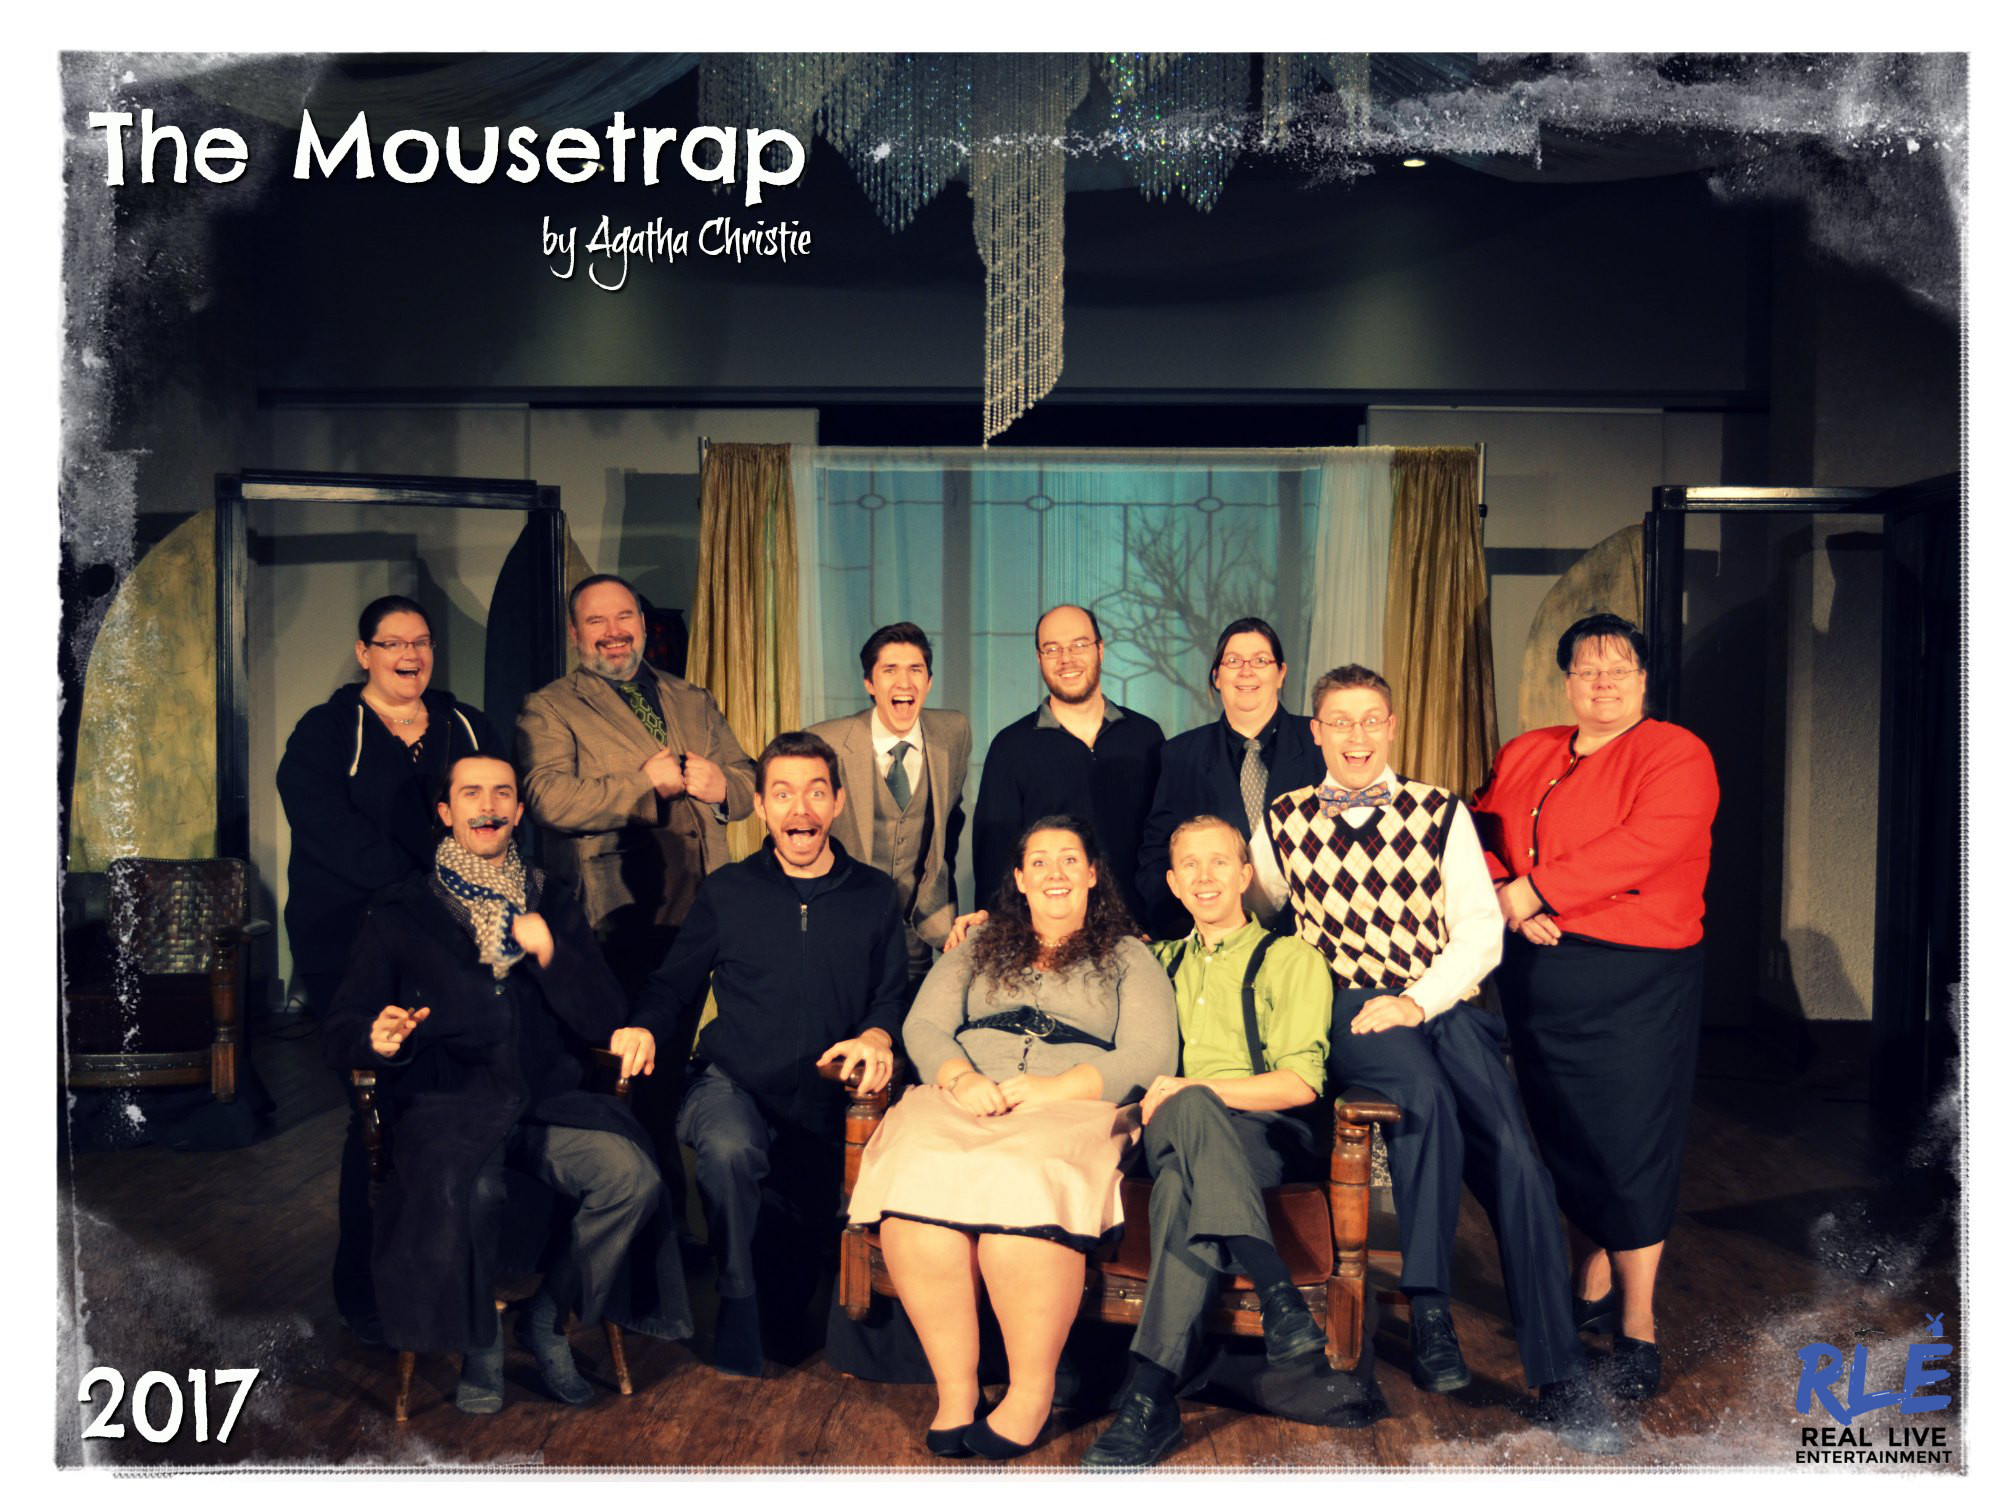 The Mousetrap, 2017